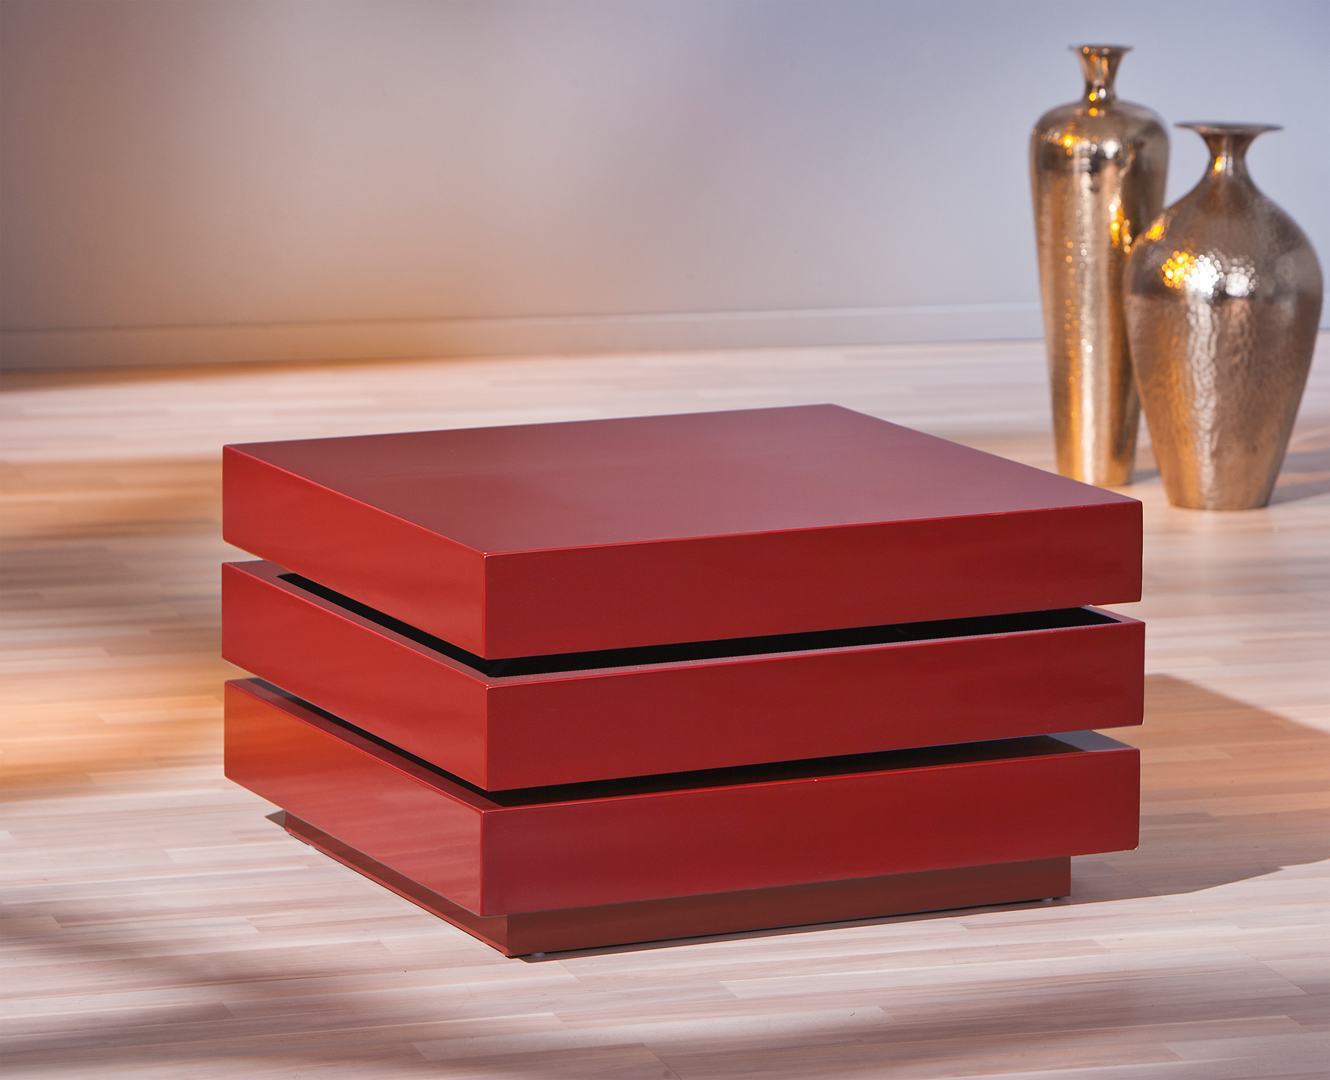 Modulable Star Laquée Table Rouge Design Basse ImfvbyY6g7